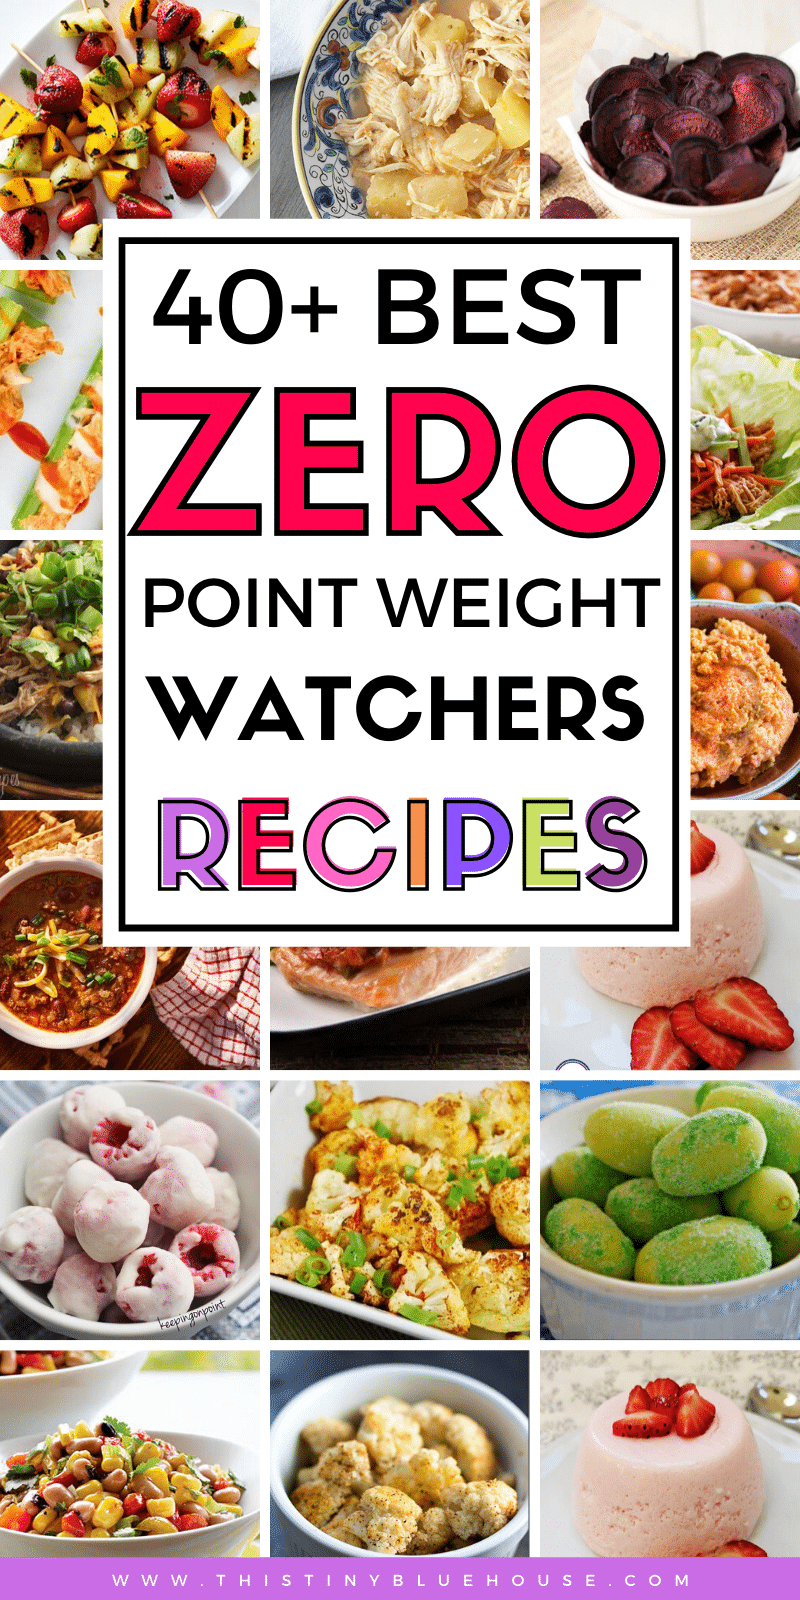 Here is the ultimate collection of Zero Point Weight Watchers Meals and Snacks. From apps to main meals and even desserts these zero point weight watchers meal ideas are guaranteed to keep your diet interesting. #weightwatchers #weightwatchersforfree #weightwatchersrecipeswithpoints #weightwatchersfreestyle #weightwatcherssnacks #weightwatchersdesserts #weightwatcherszeropoint #weightwatcherzeropointrecipes #weightwatcherszeropointmeals #weightwatcherszeropointsnacks #weightwatcherszeropointdesserts